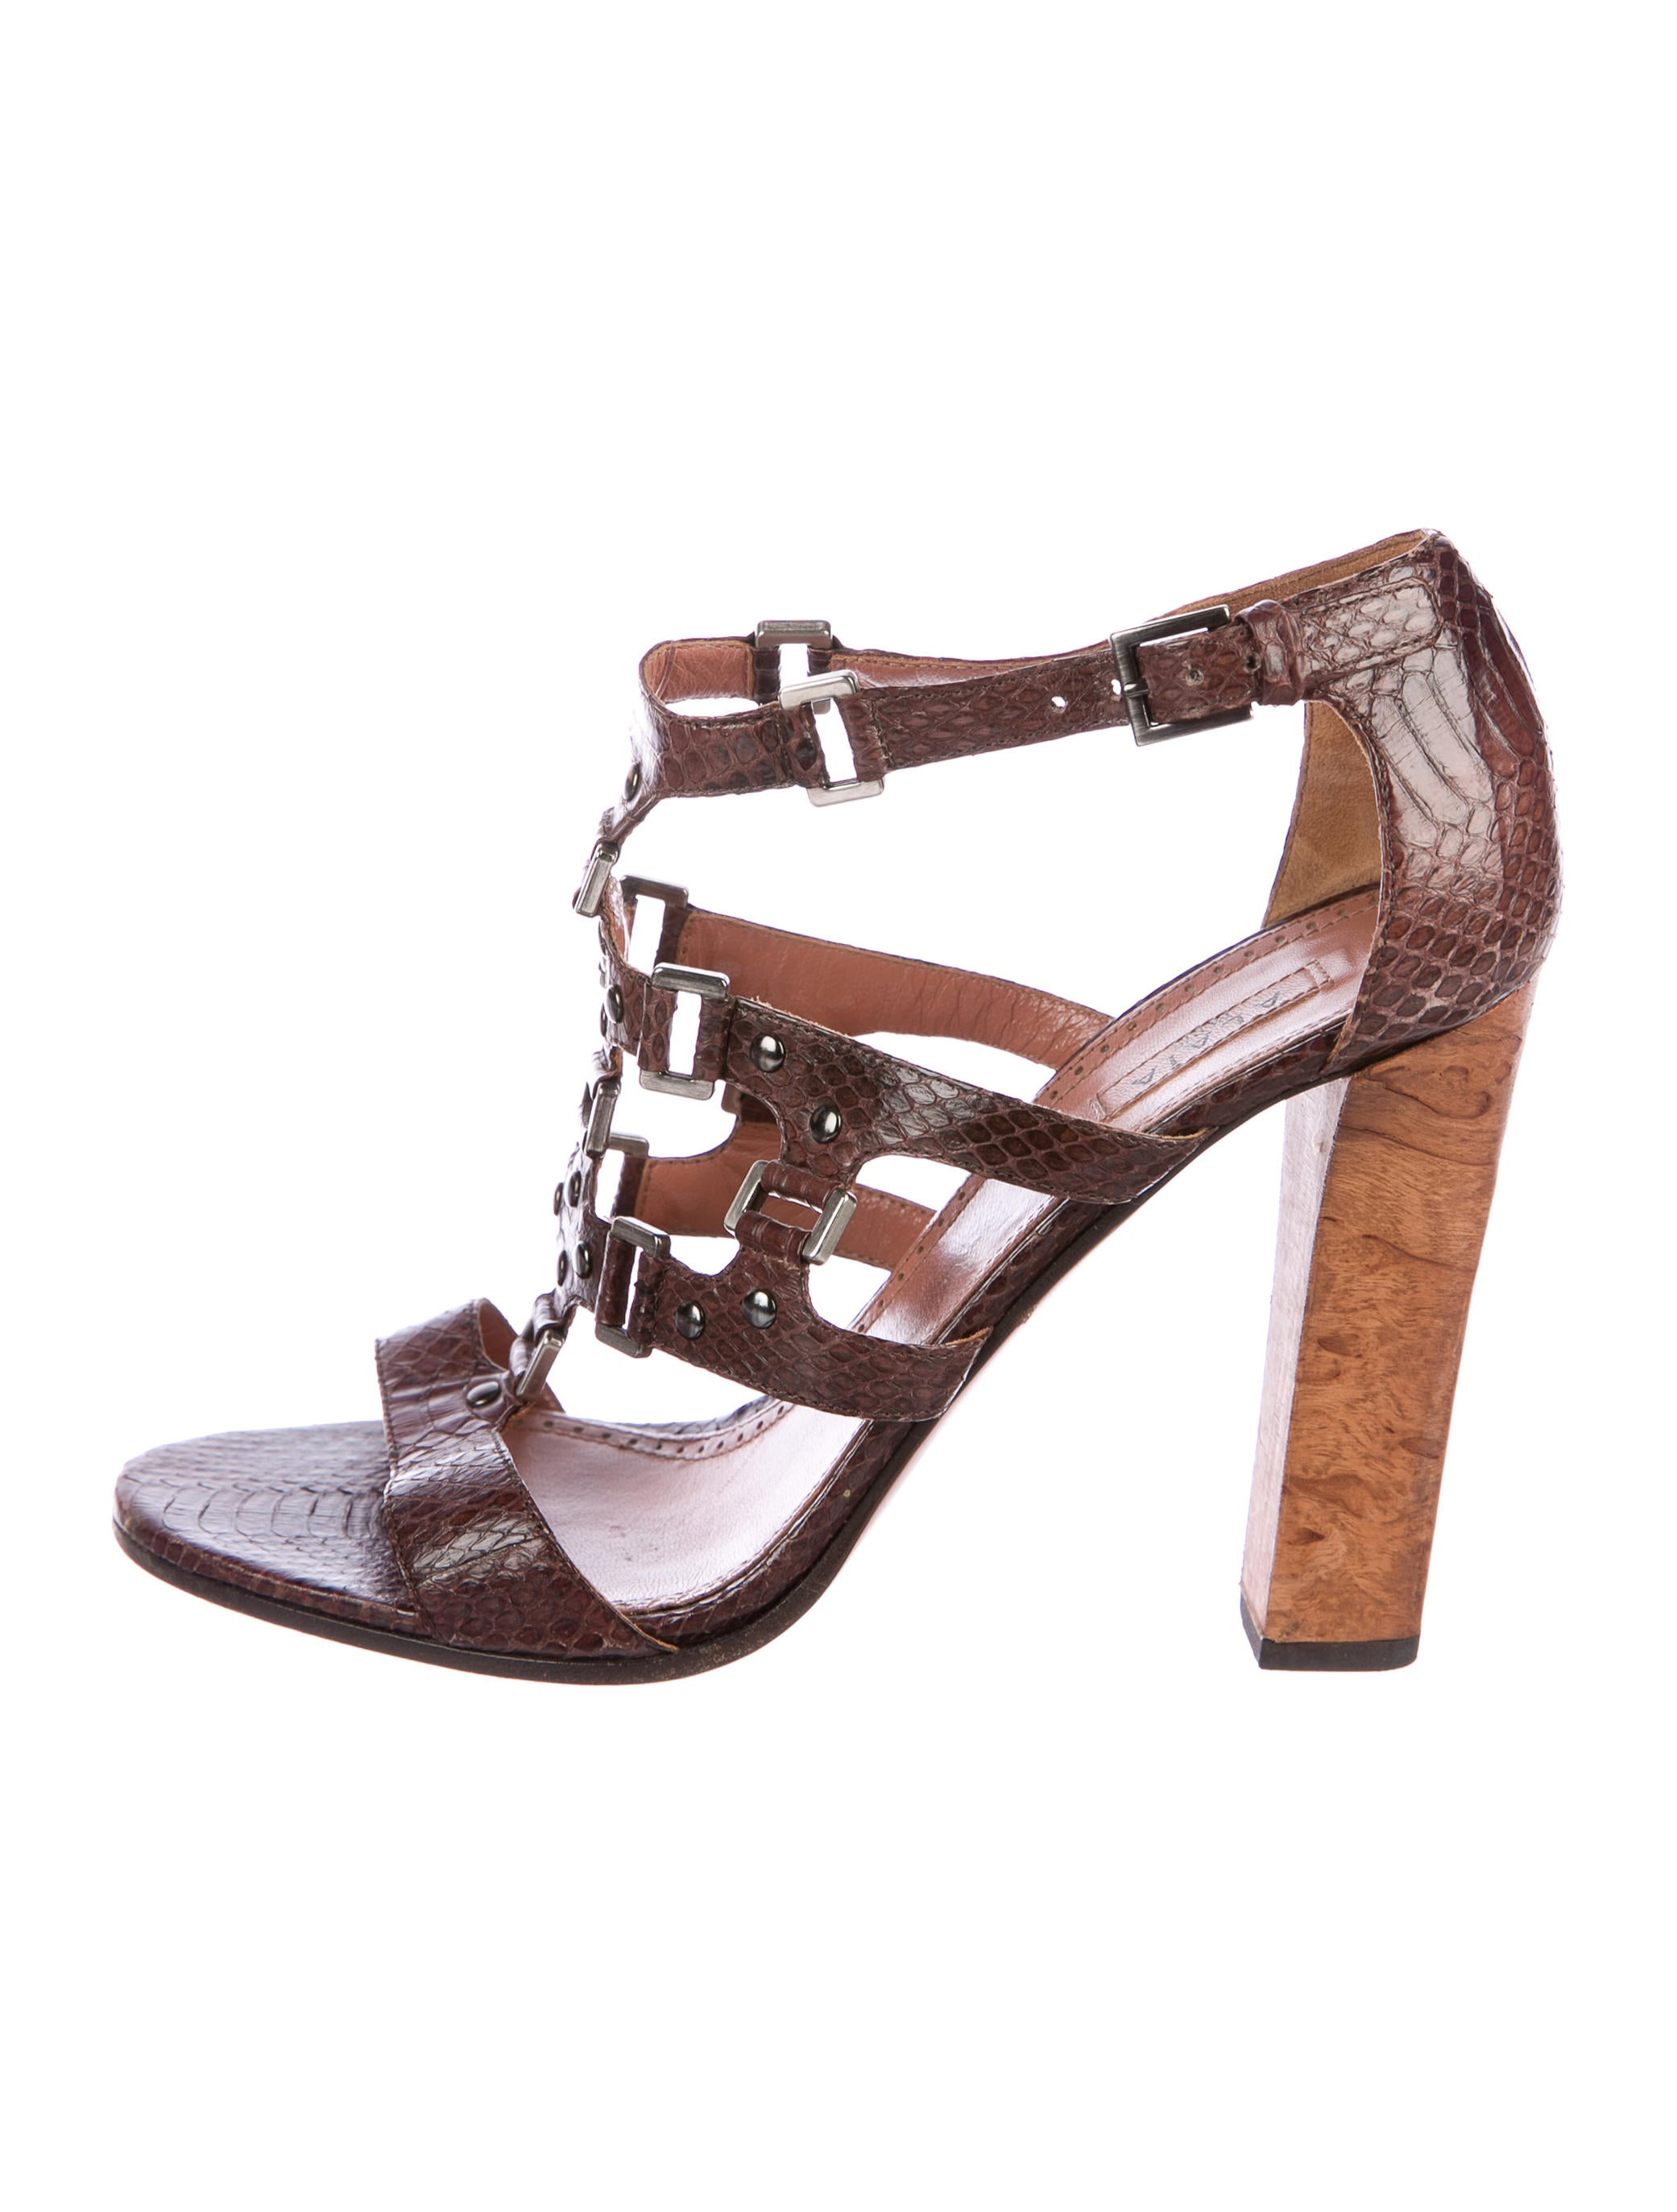 Alaïa Snakeskin Caged Sandals clearance fashionable H702G0pWe